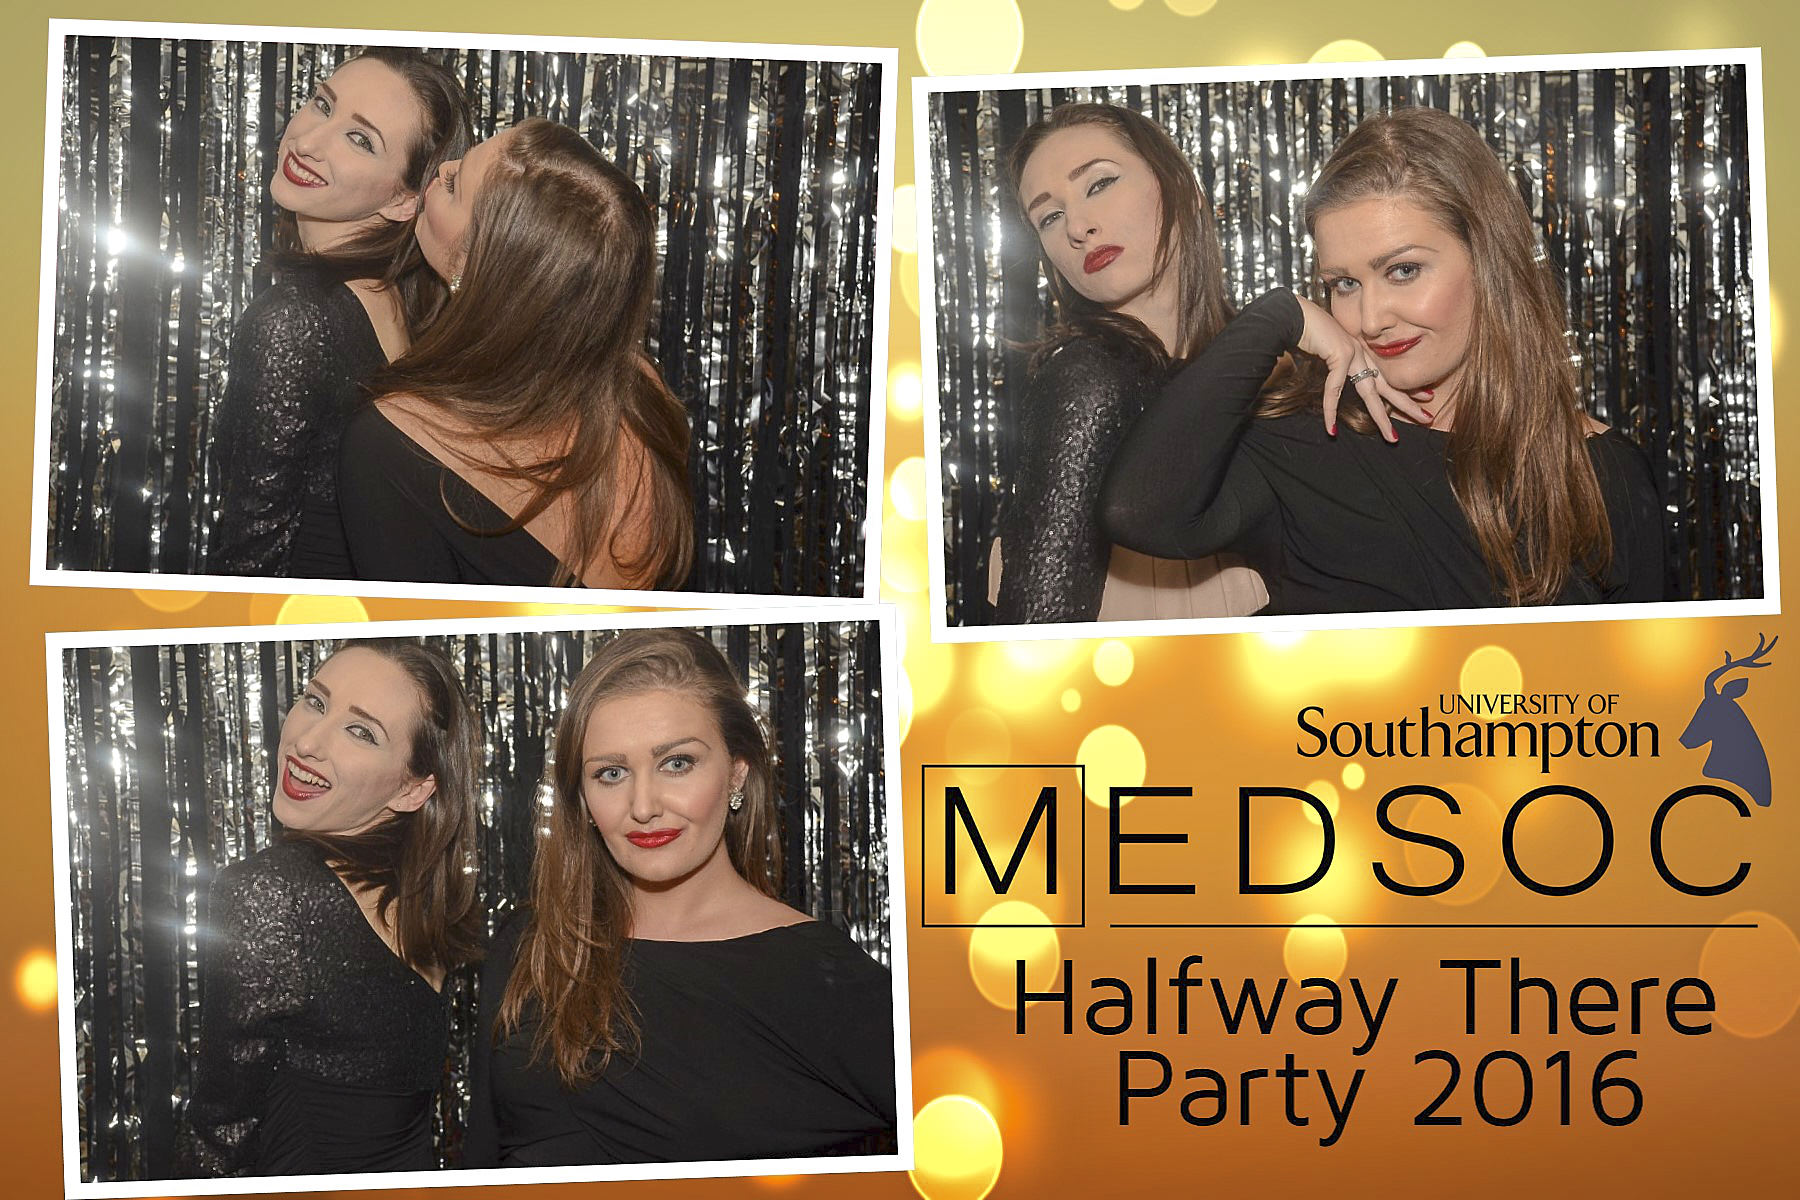 MedSoc Halfway There Party 2016 DS224939.jpg